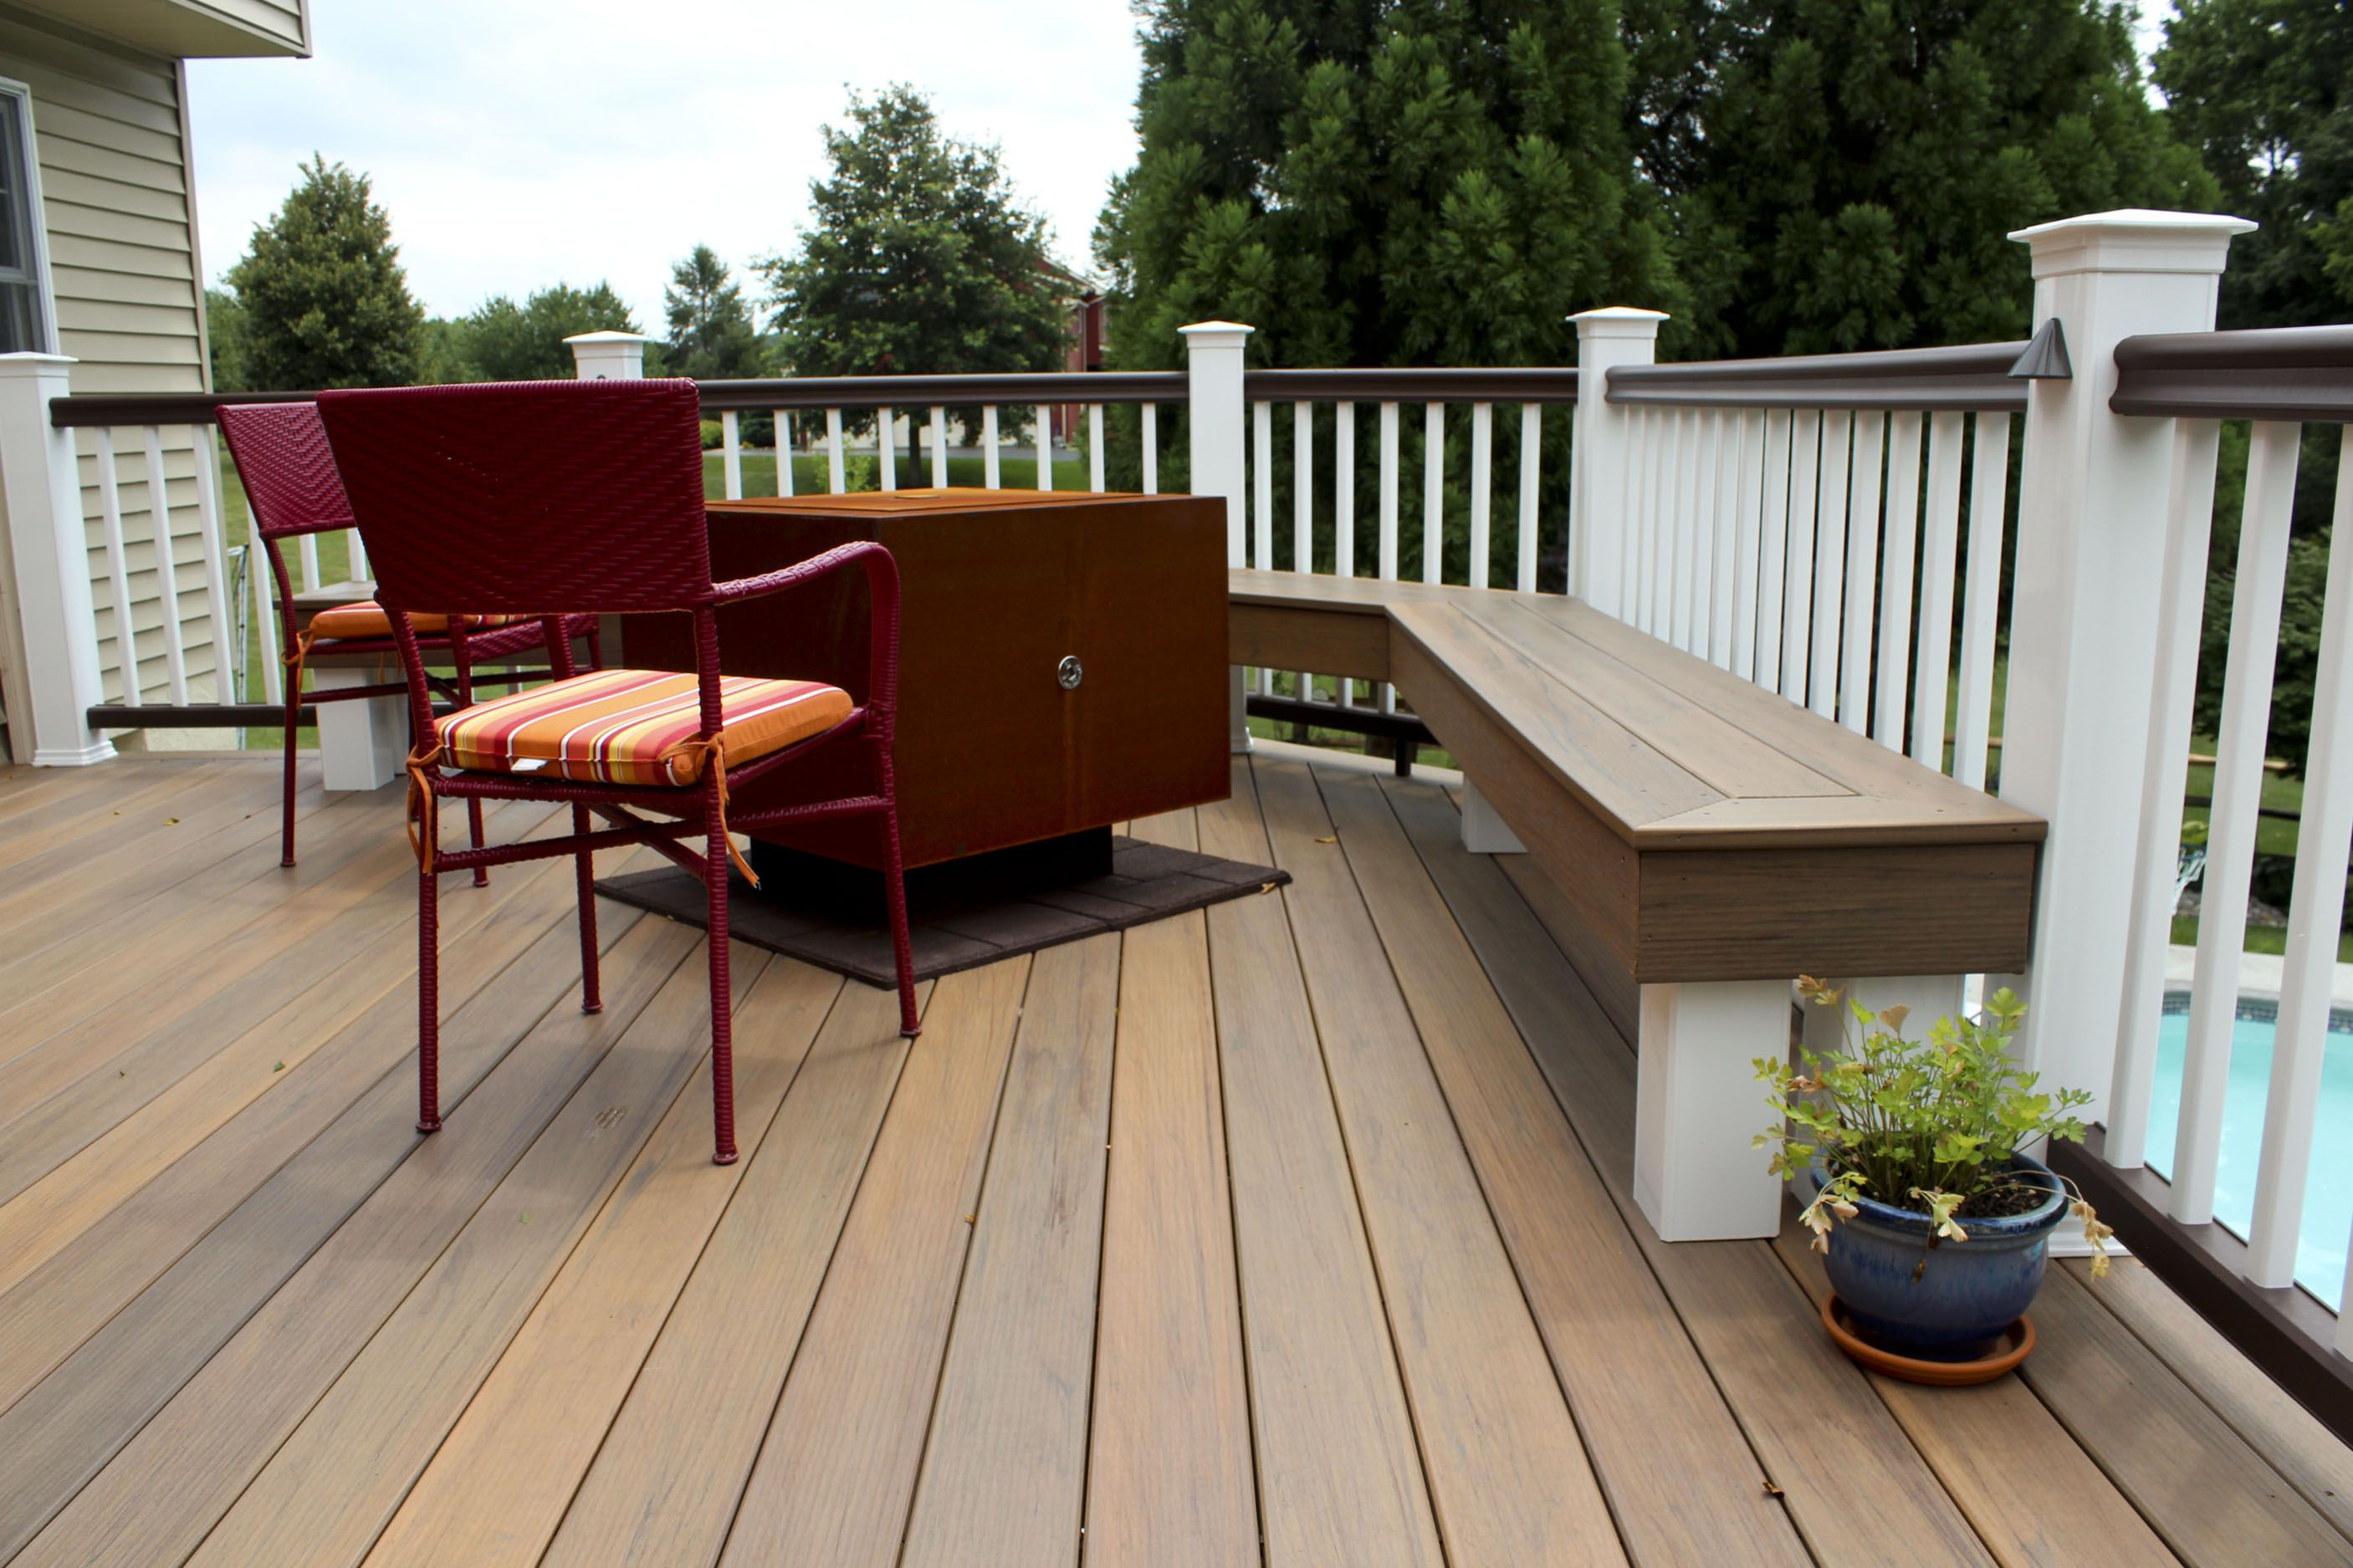 Tigerwood Decking and TimberTech Radiance Railing with Traditional